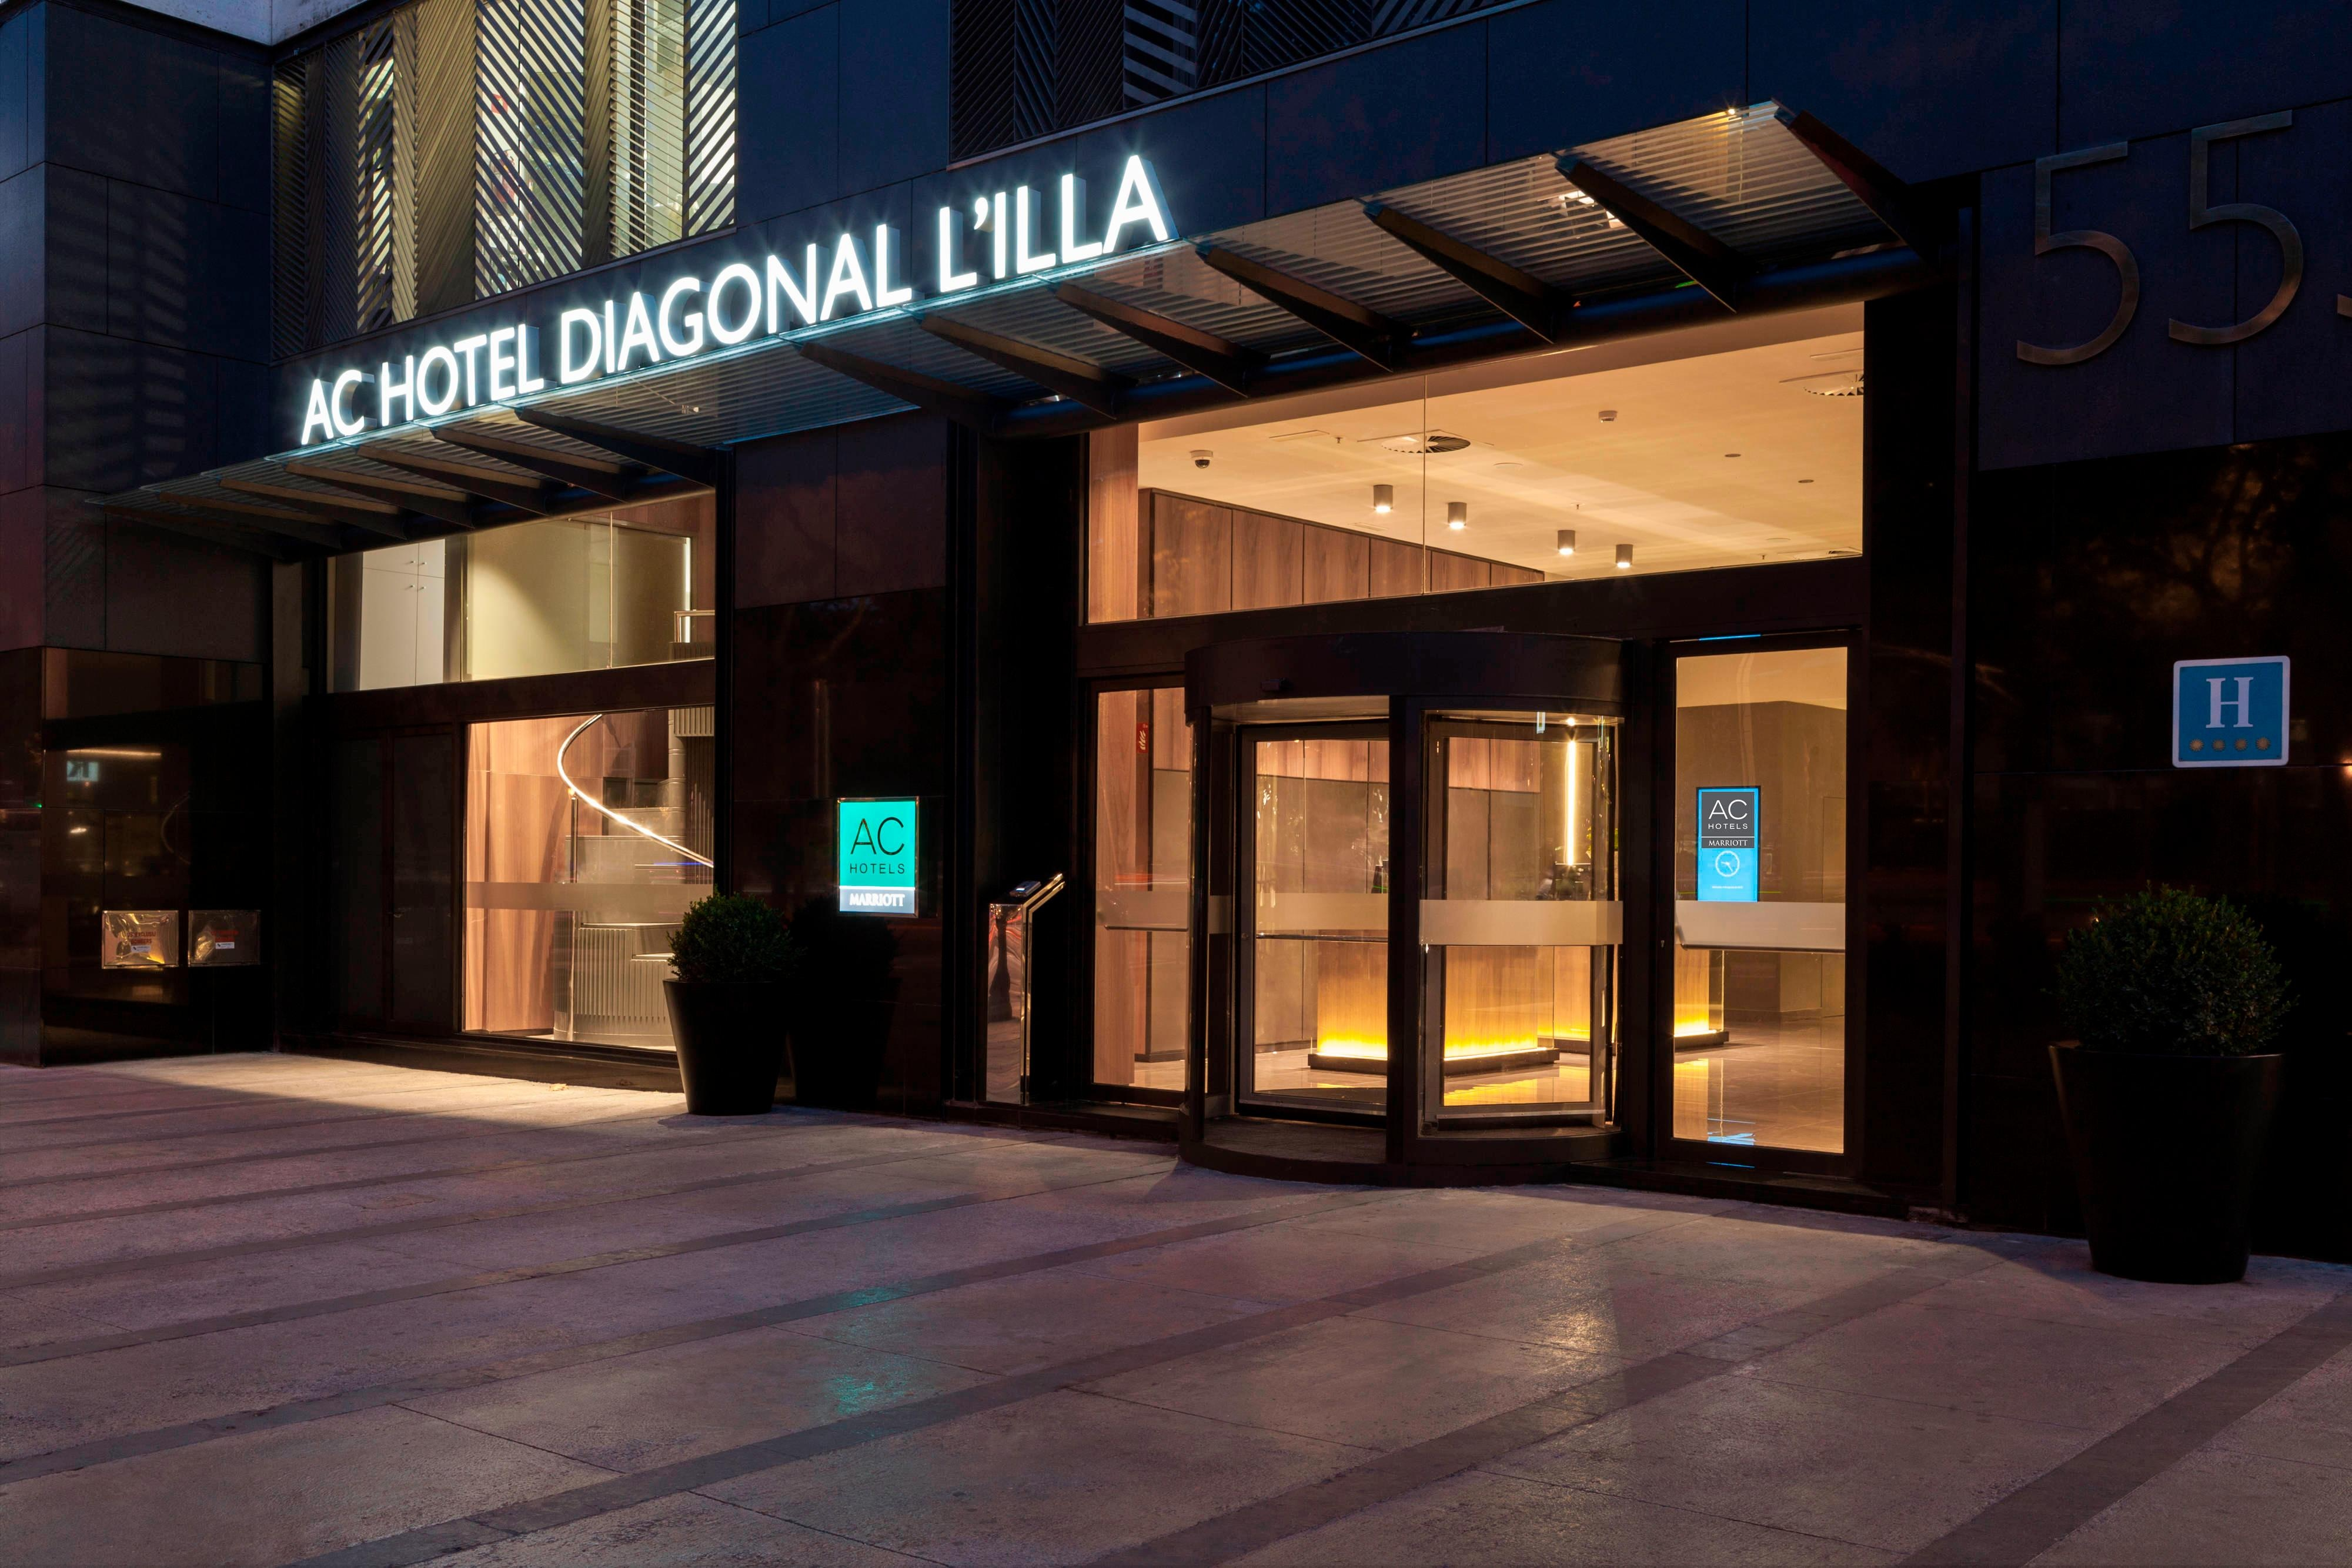 Entrance AC Hotel Diagonal L´Illa